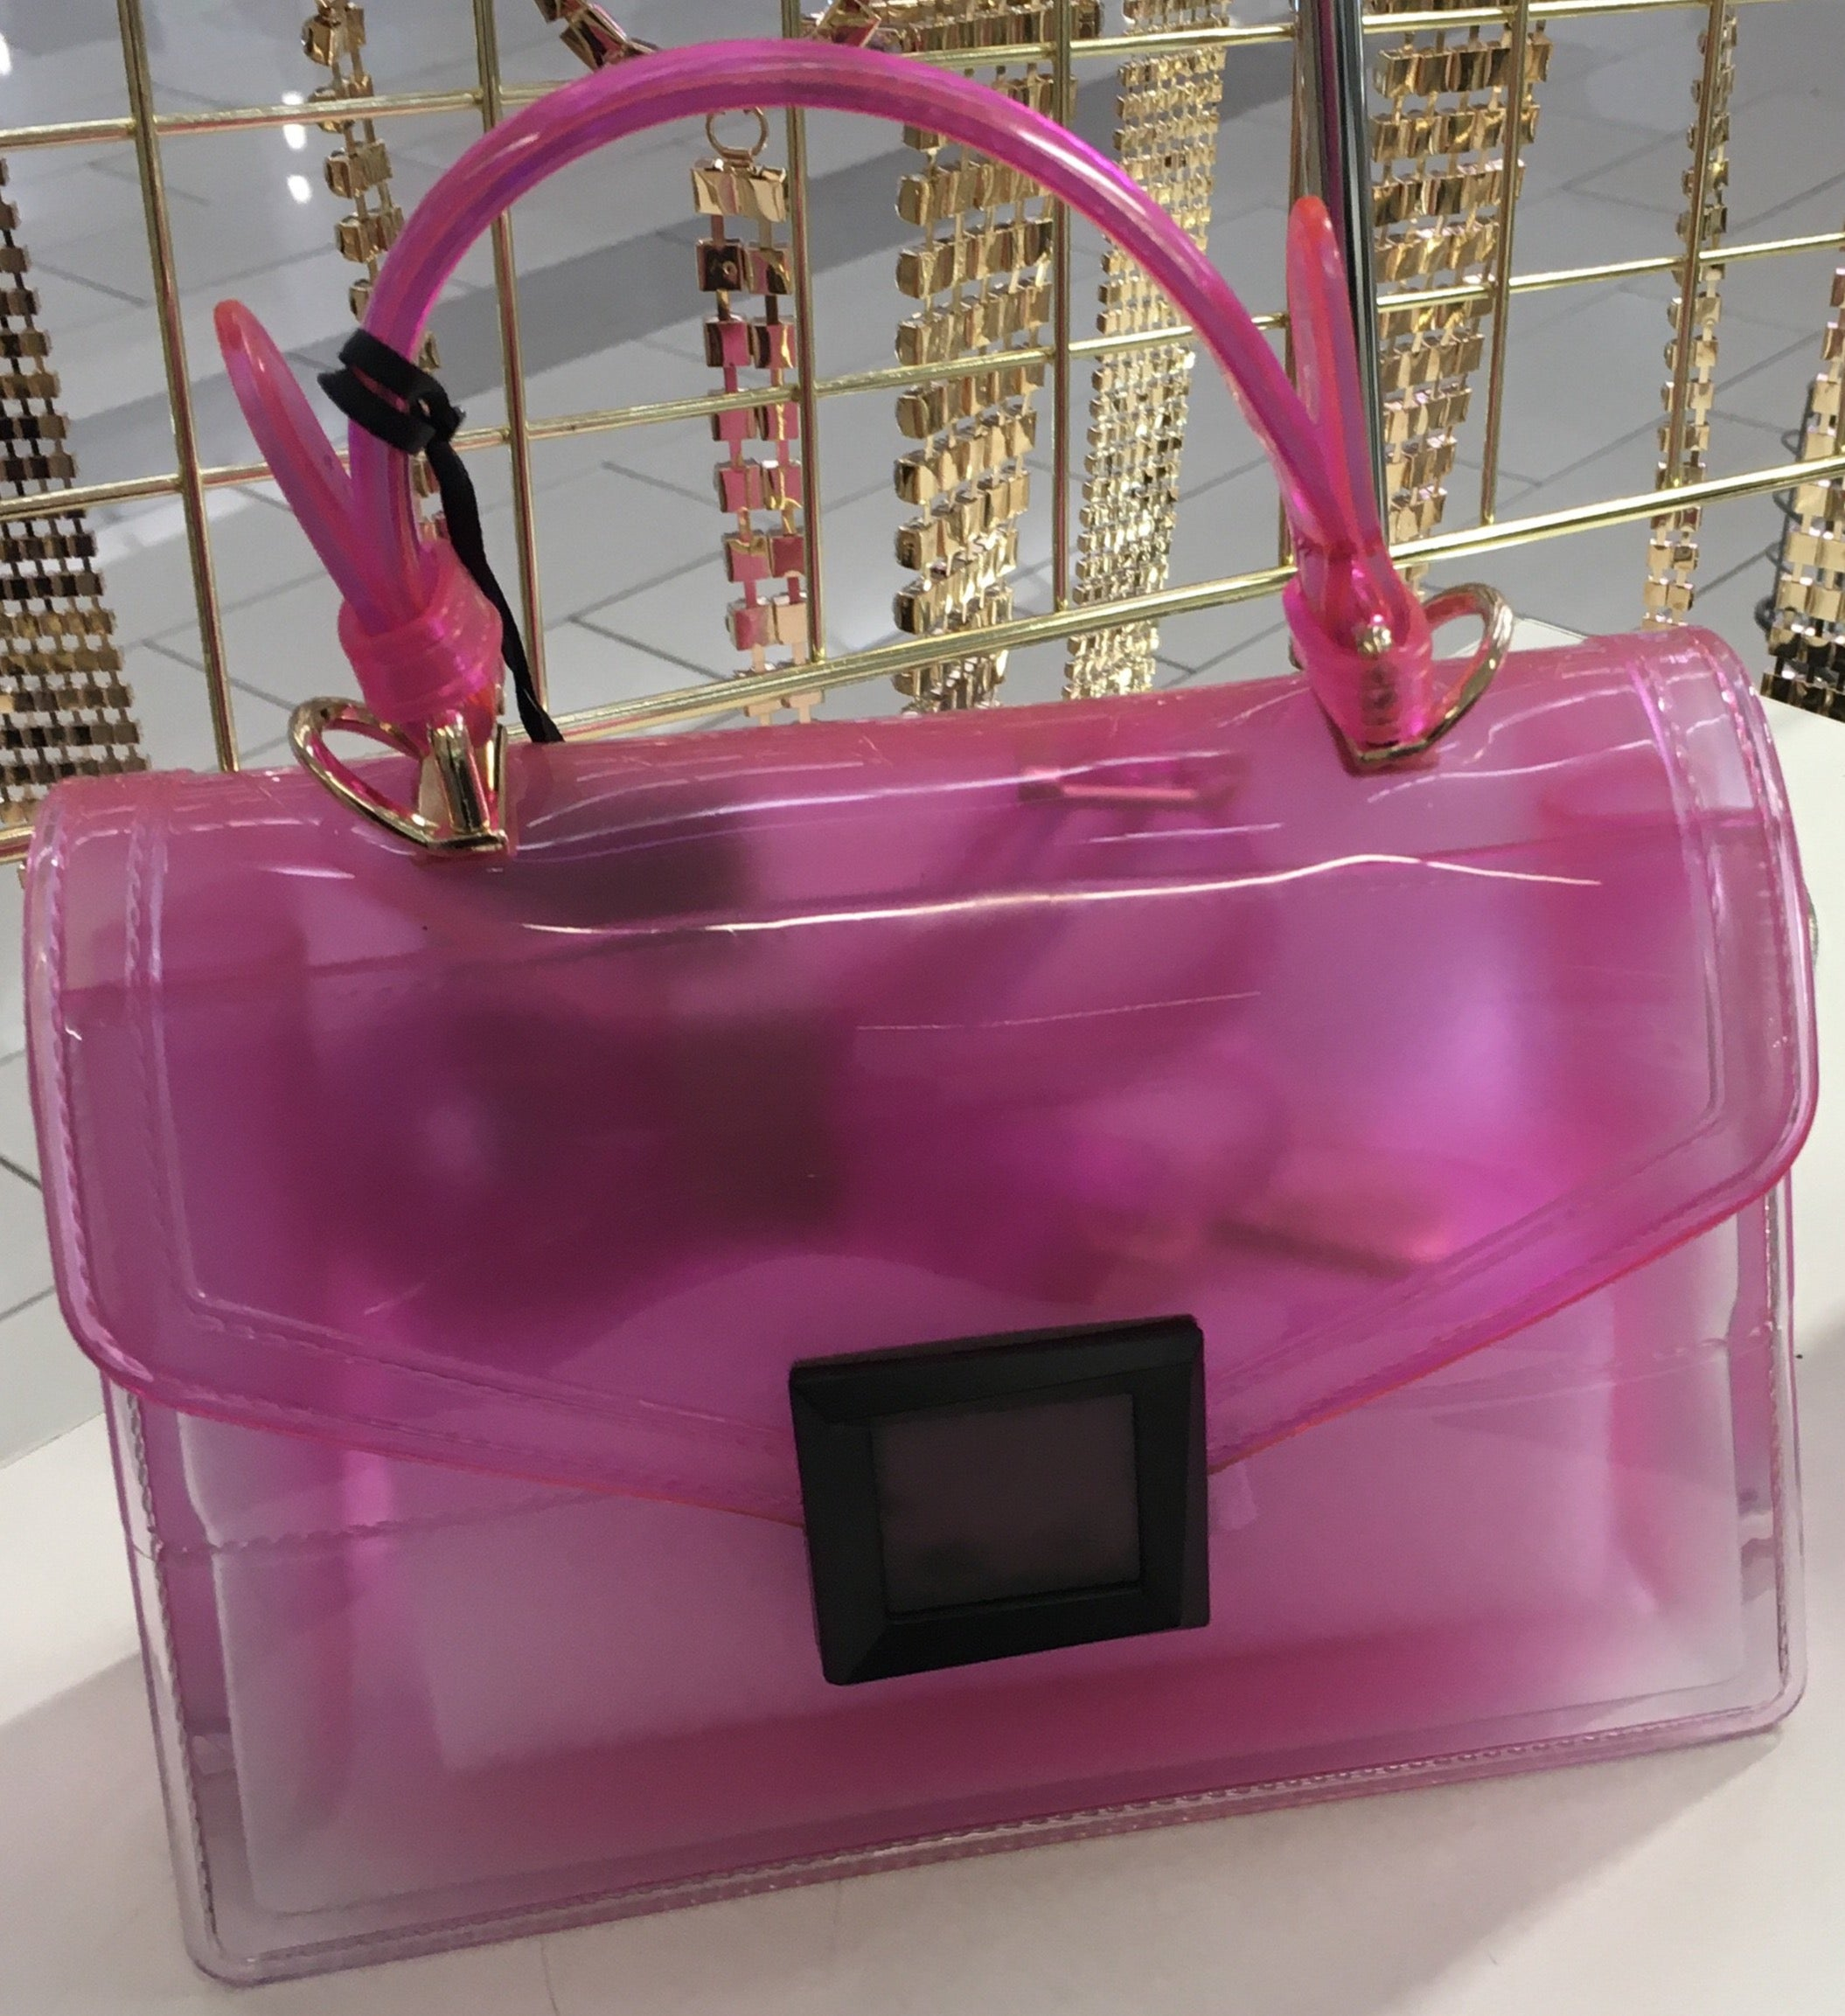 Clear Plastic Rubber Purse Bags